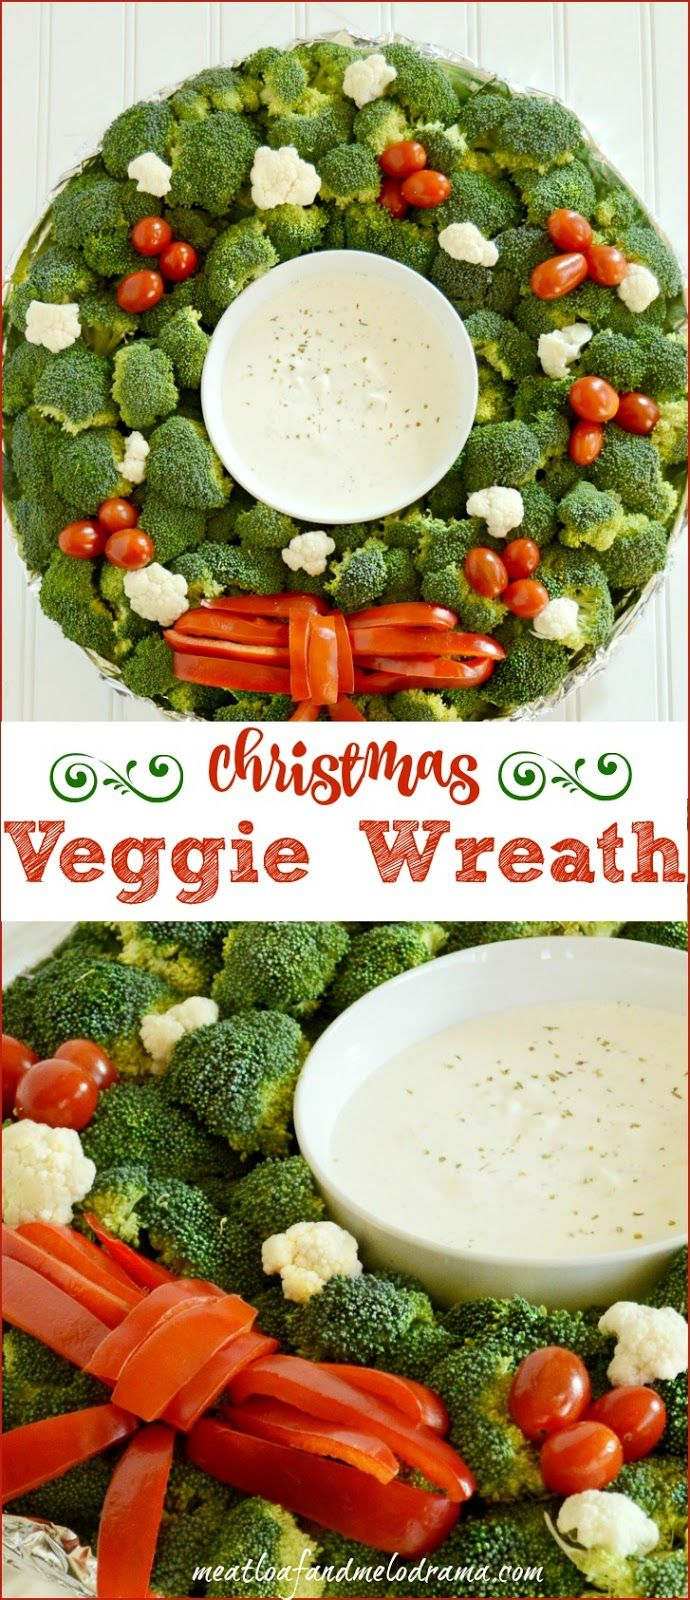 Veggie Christmas Wreath Platter. I've been making this most Christmas Eve's for years. Super easy. Sometimes I use hummus instead of dip.